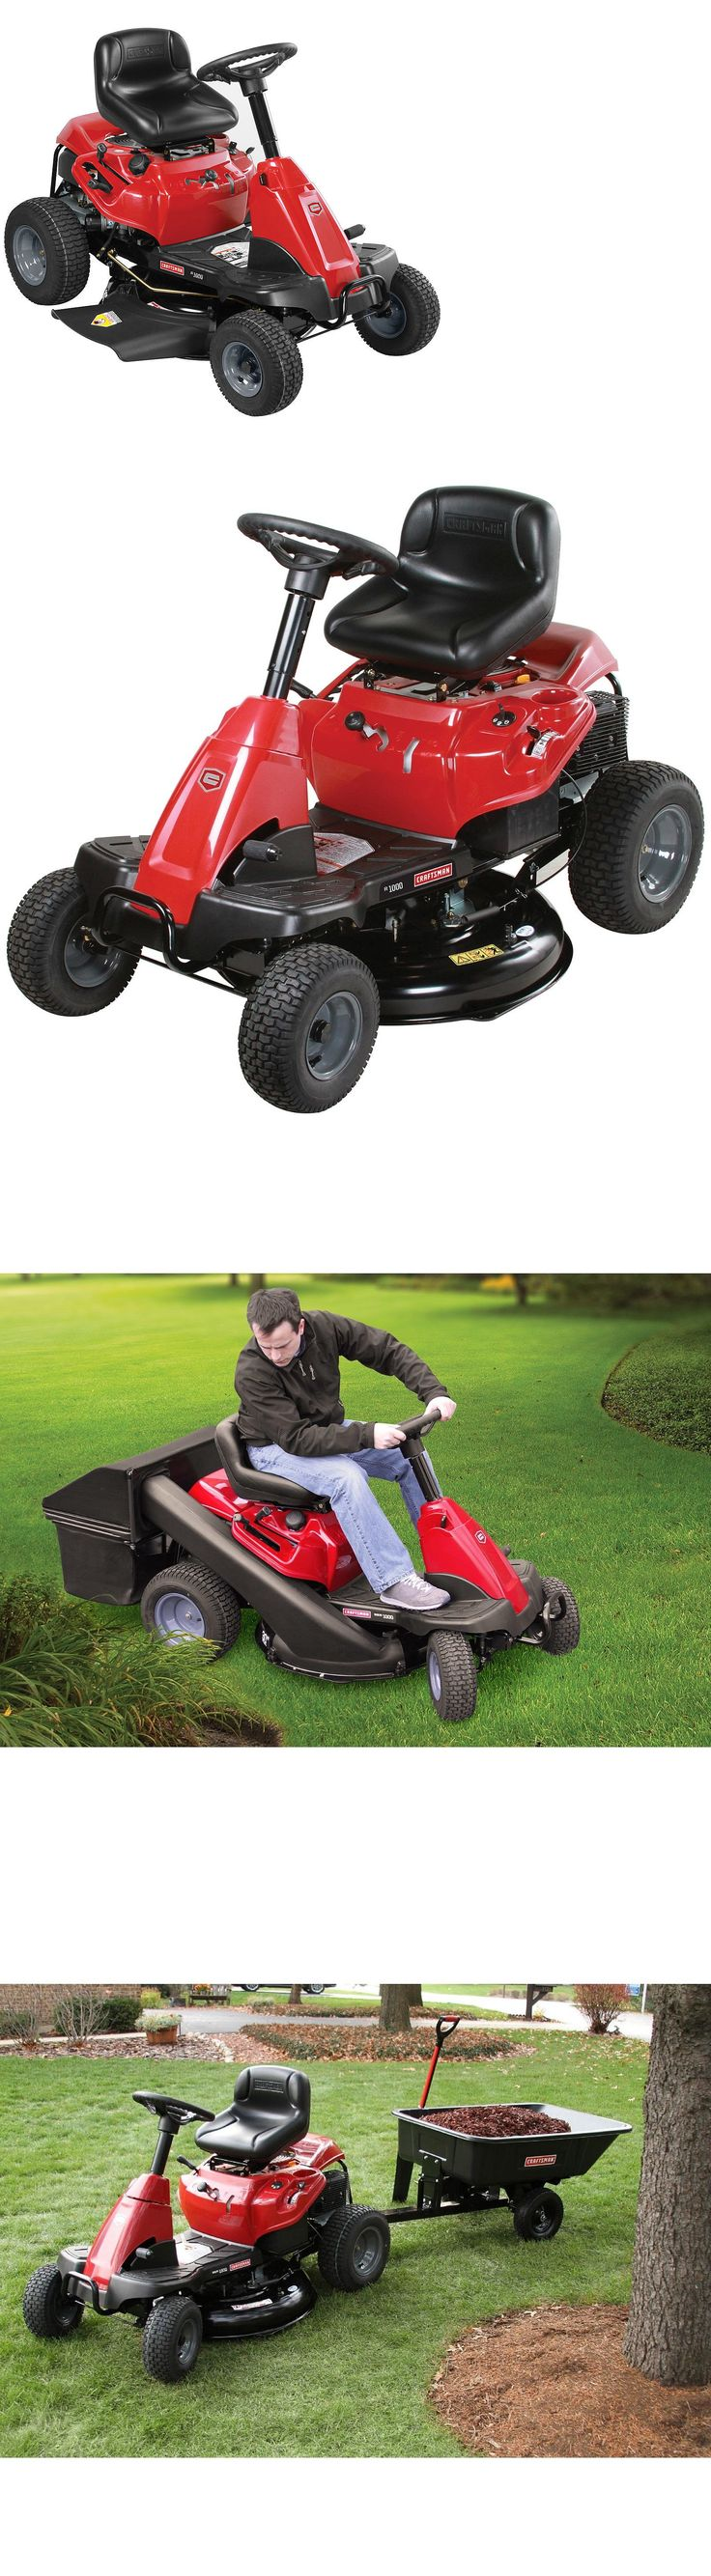 Riding Mowers 177021: Factory New Craftsman Small Yard Rider 30 420Cc 6-Speed Lawn Mower And Mulch Plug -> BUY IT NOW ONLY: $1189 on eBay!